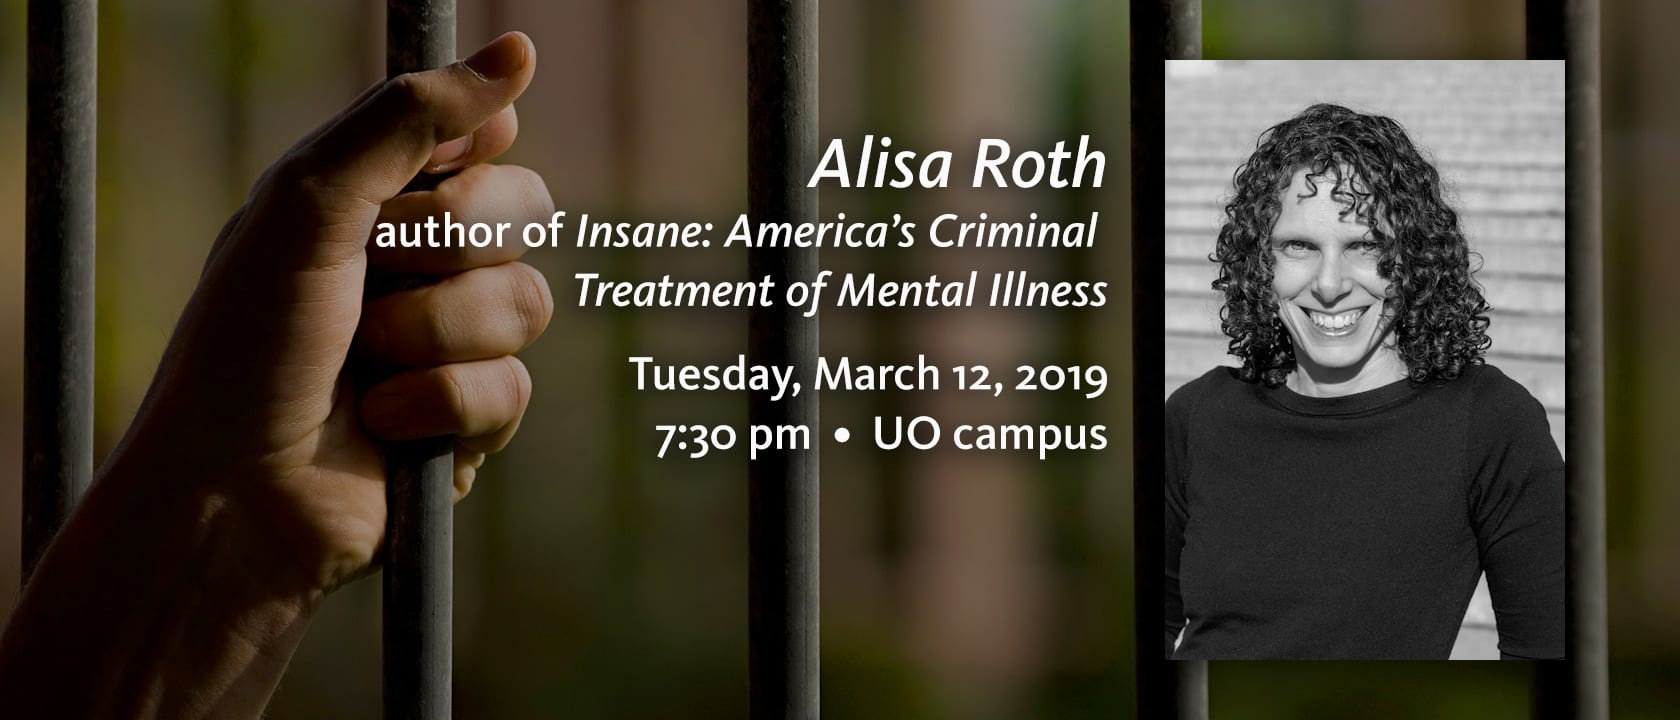 Permalink to:Alisa Roth—March 12, 2019